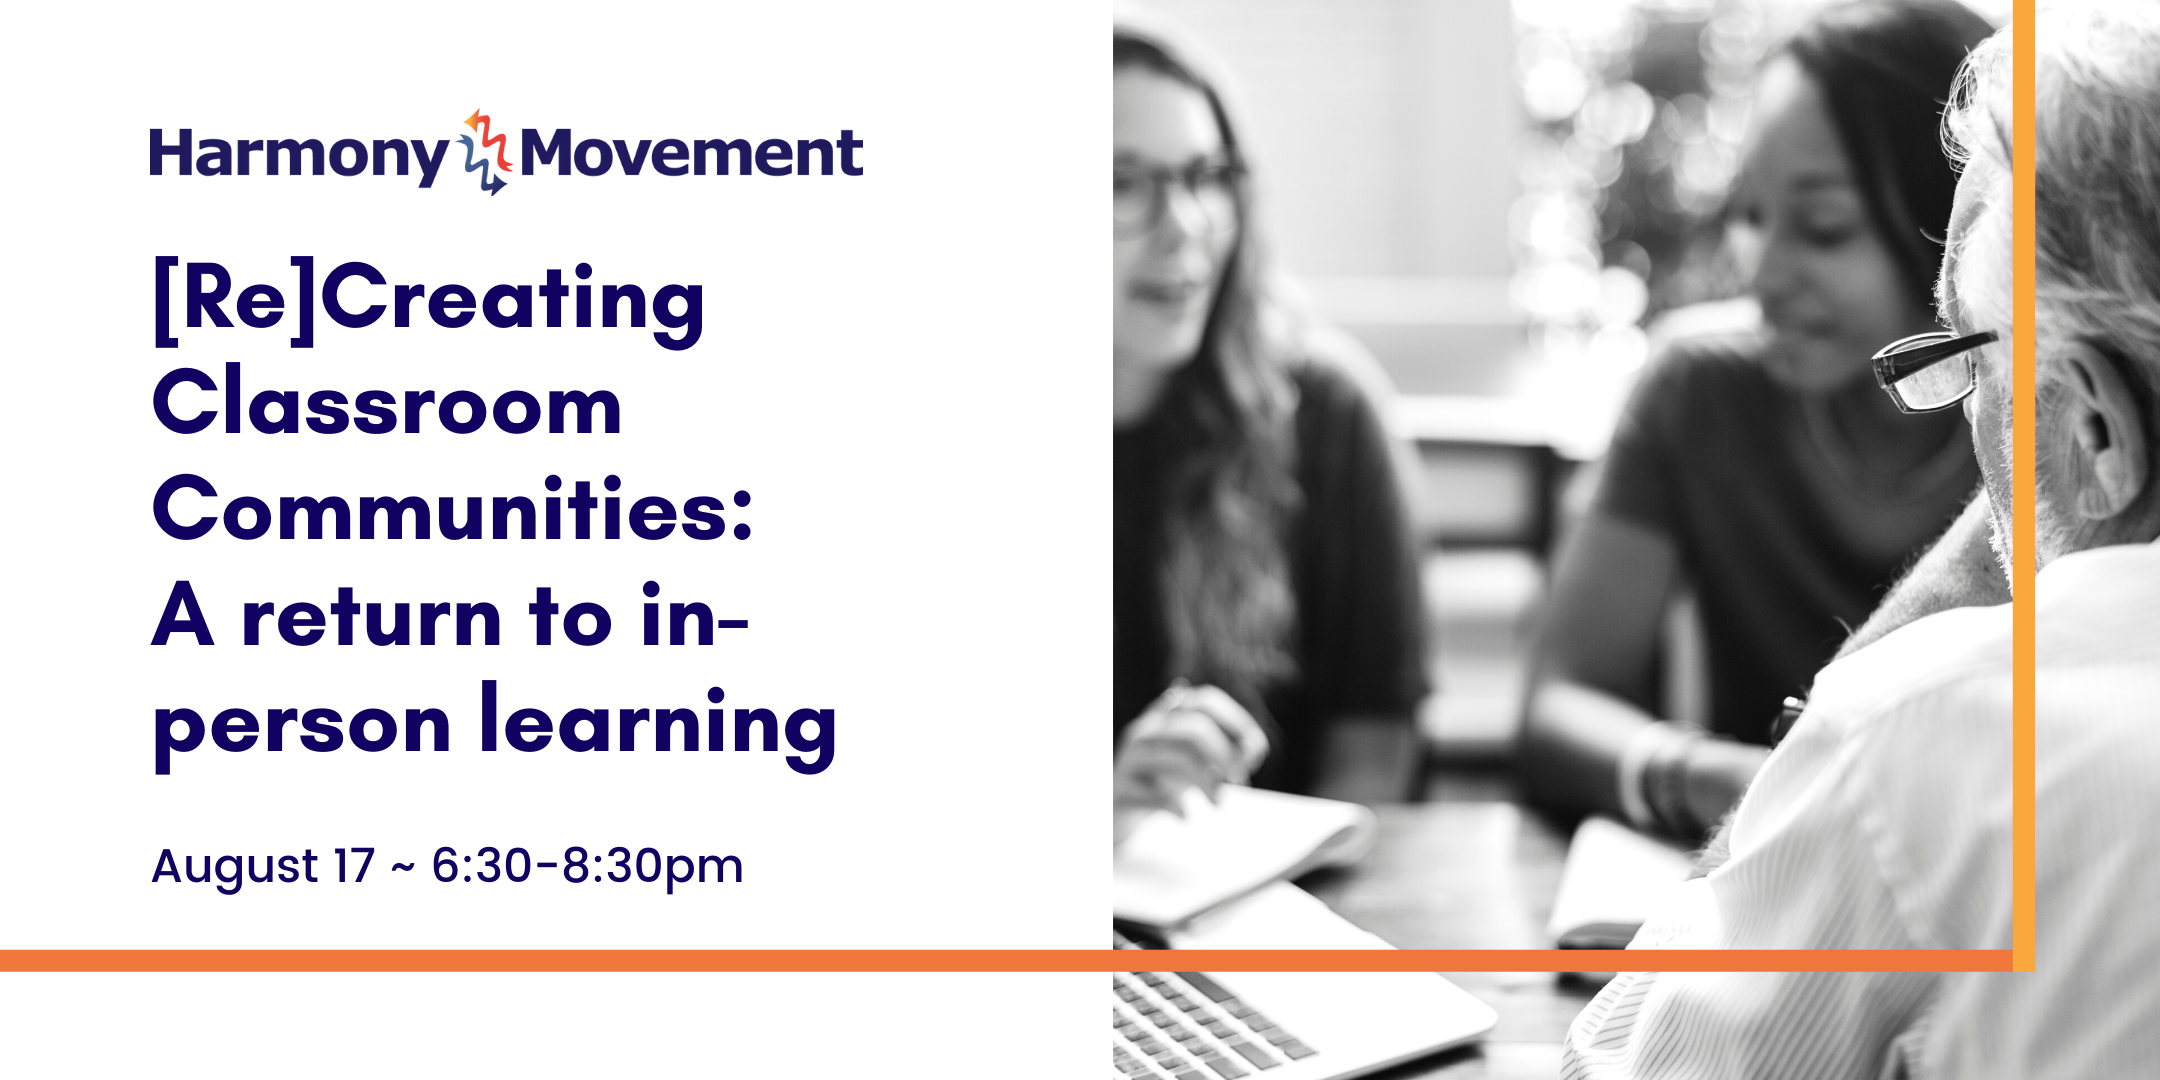 [Re]Creating Classroom Communities: A return to in-person learning, August 17, 6:30-8:30pm